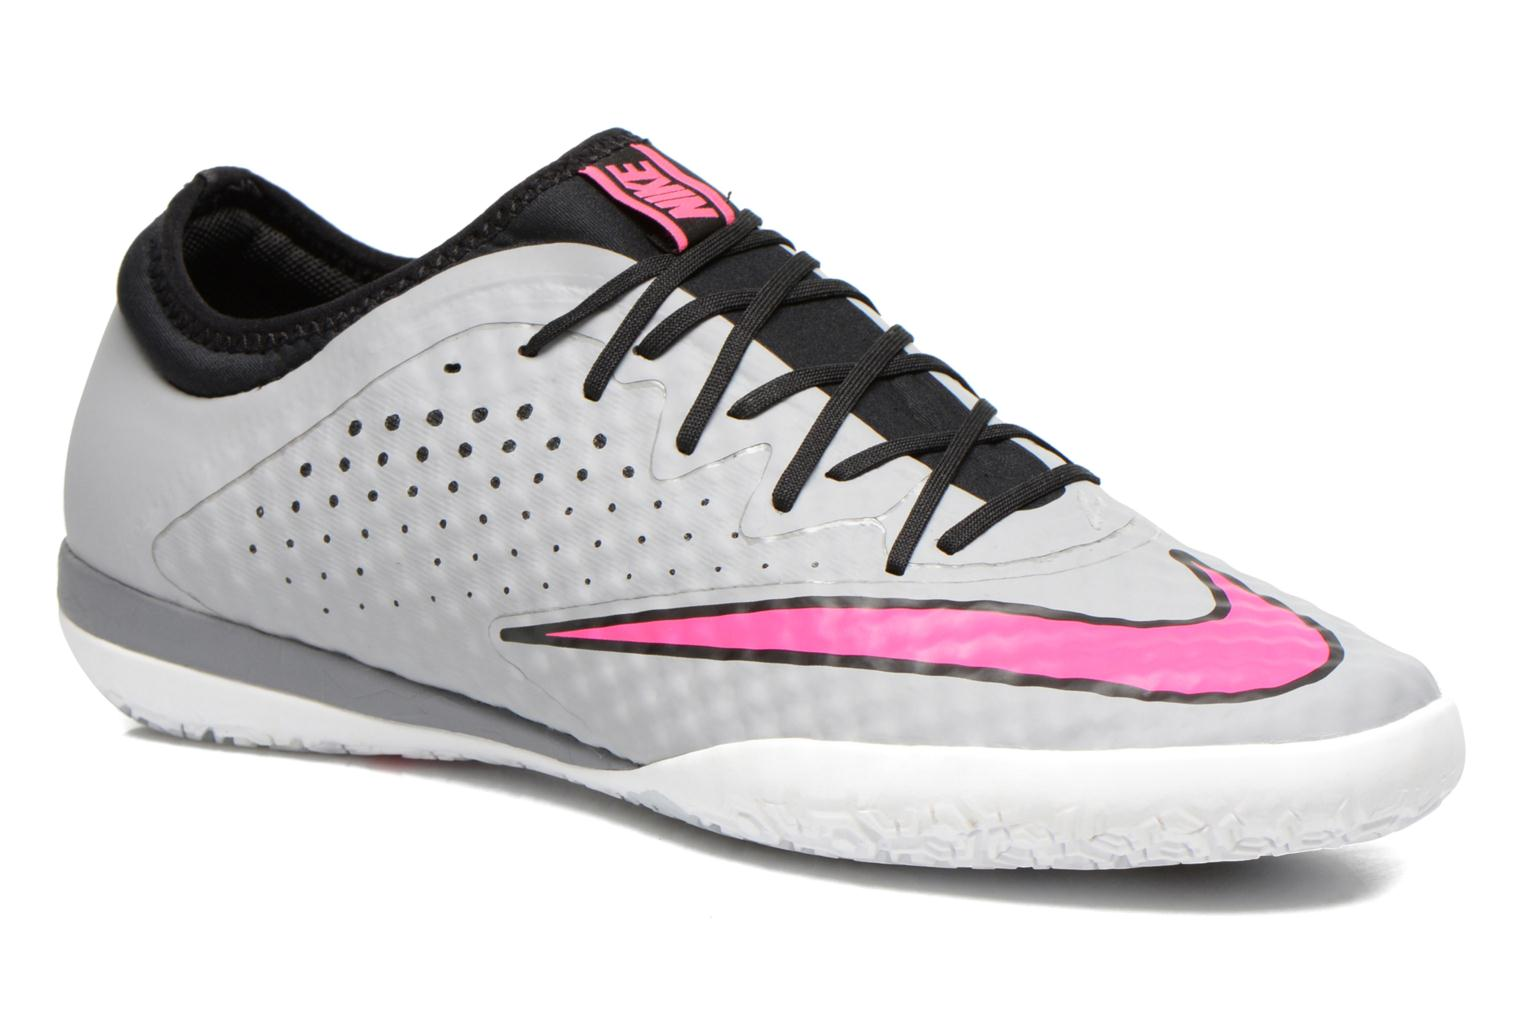 Mercurialx Finale Ic Wolf Grey/Hyper Pink-White-Blk